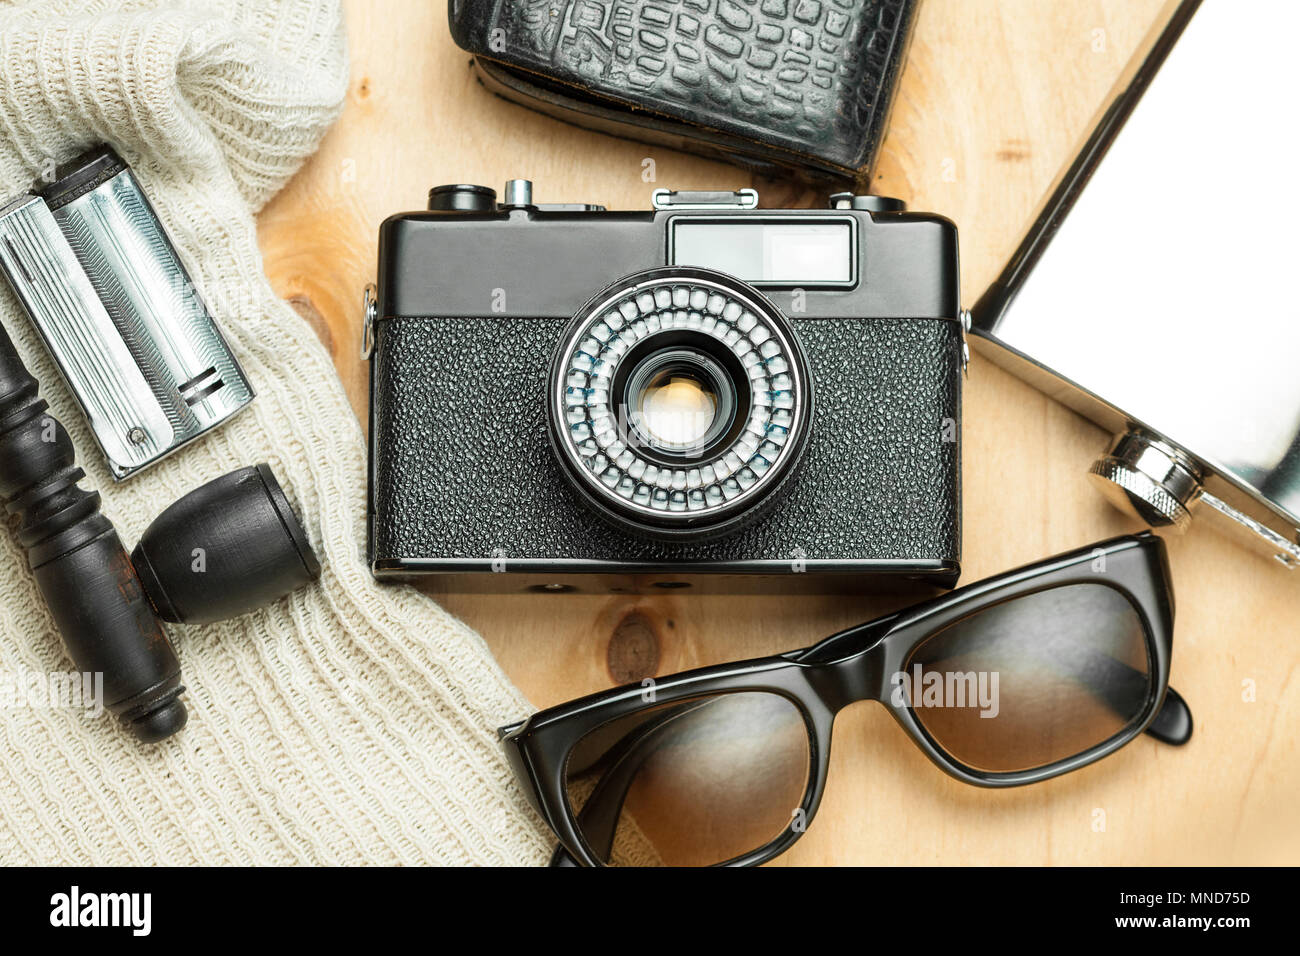 Accessories of the creative person. 35-mm film camera, exposure meter in leather case, steel flask, sunglasses and smoking set on wooden background. - Stock Image